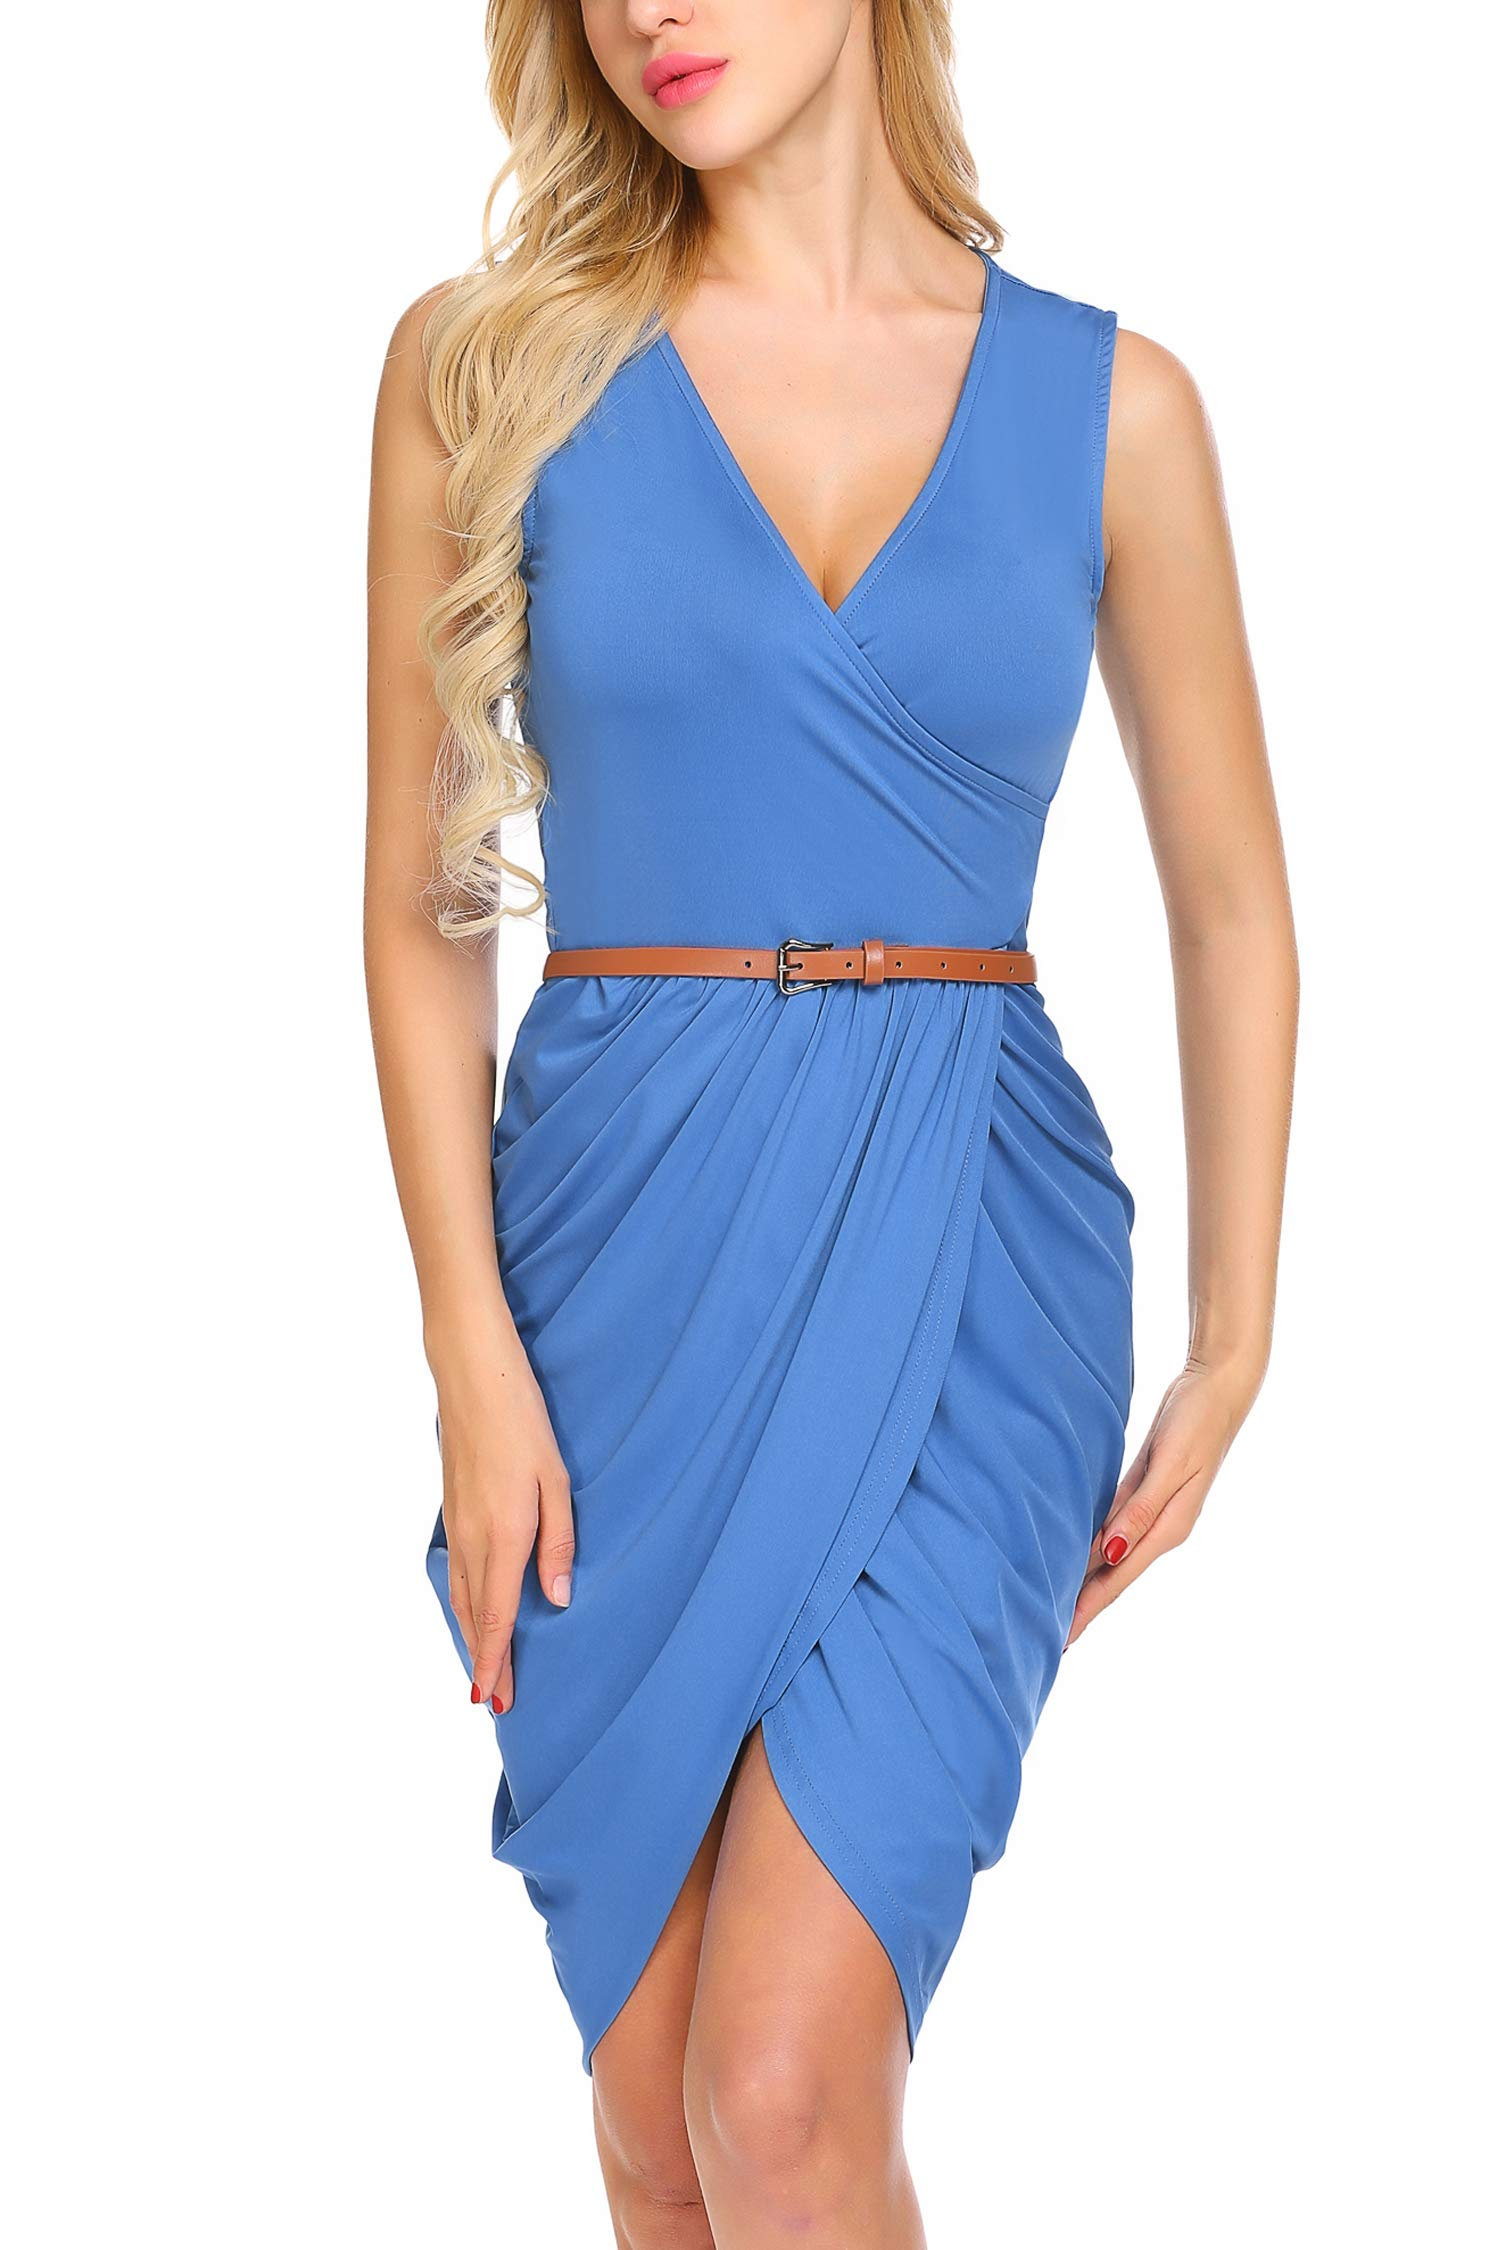 Available at Amazon: Meaneor Women V-Neck Sleeveless Solid Draped Ruched Mini Belt Dress